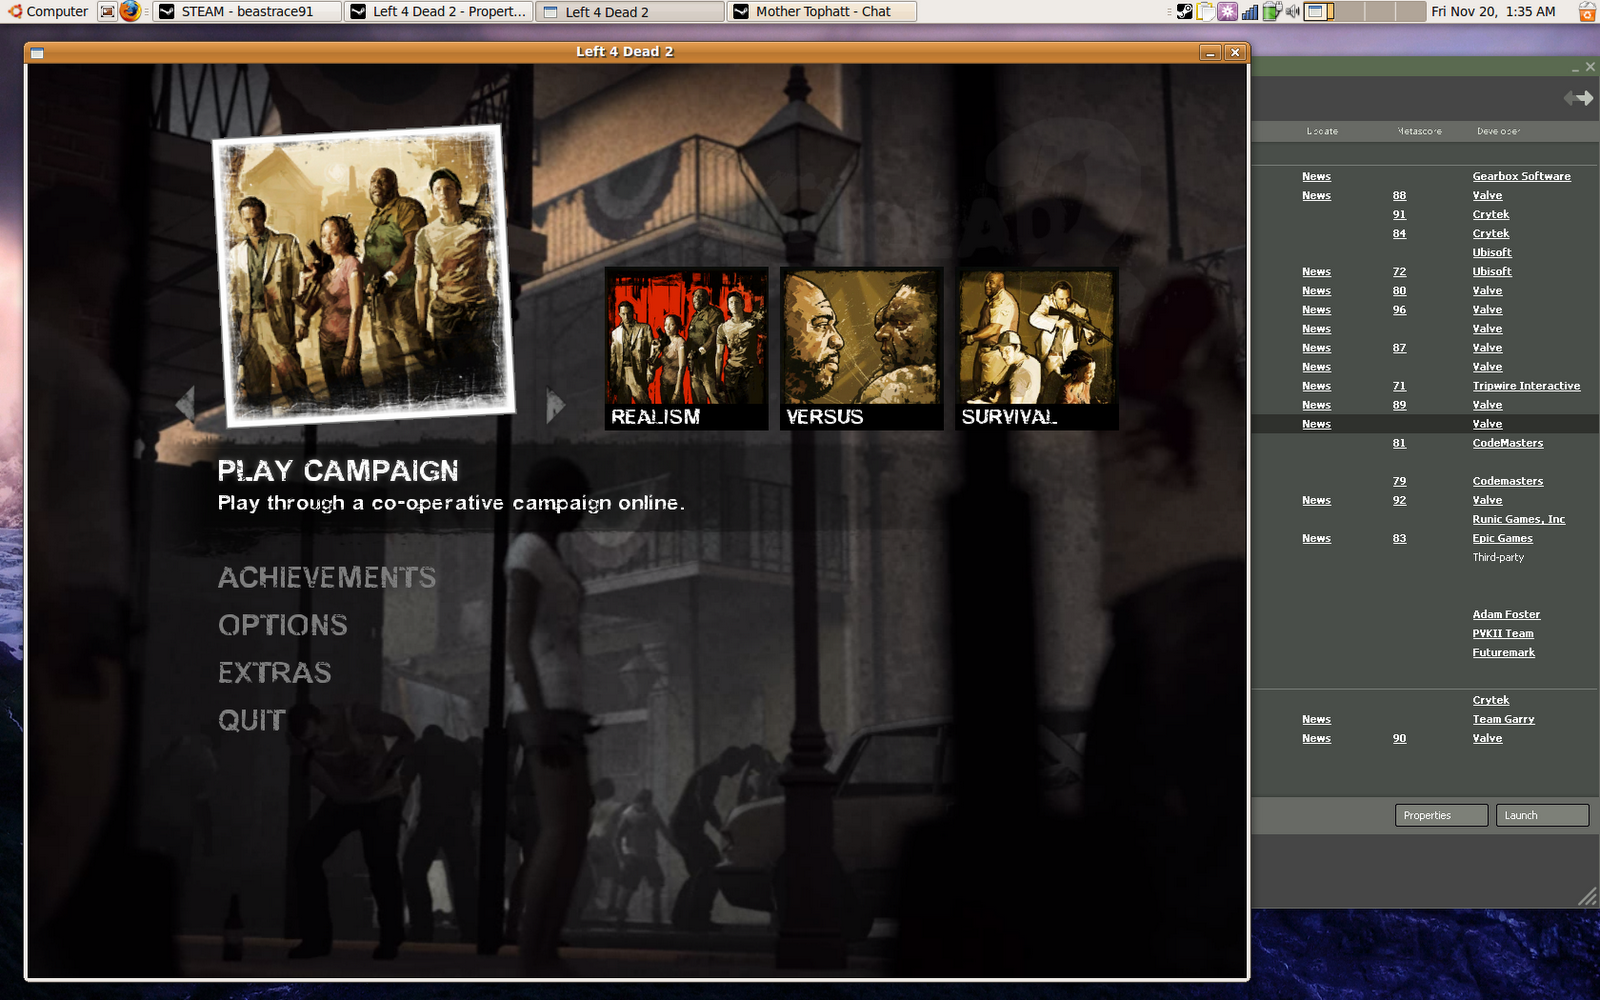 Left 4 Dead 2 Steam Could Not Load Library Matchmaking